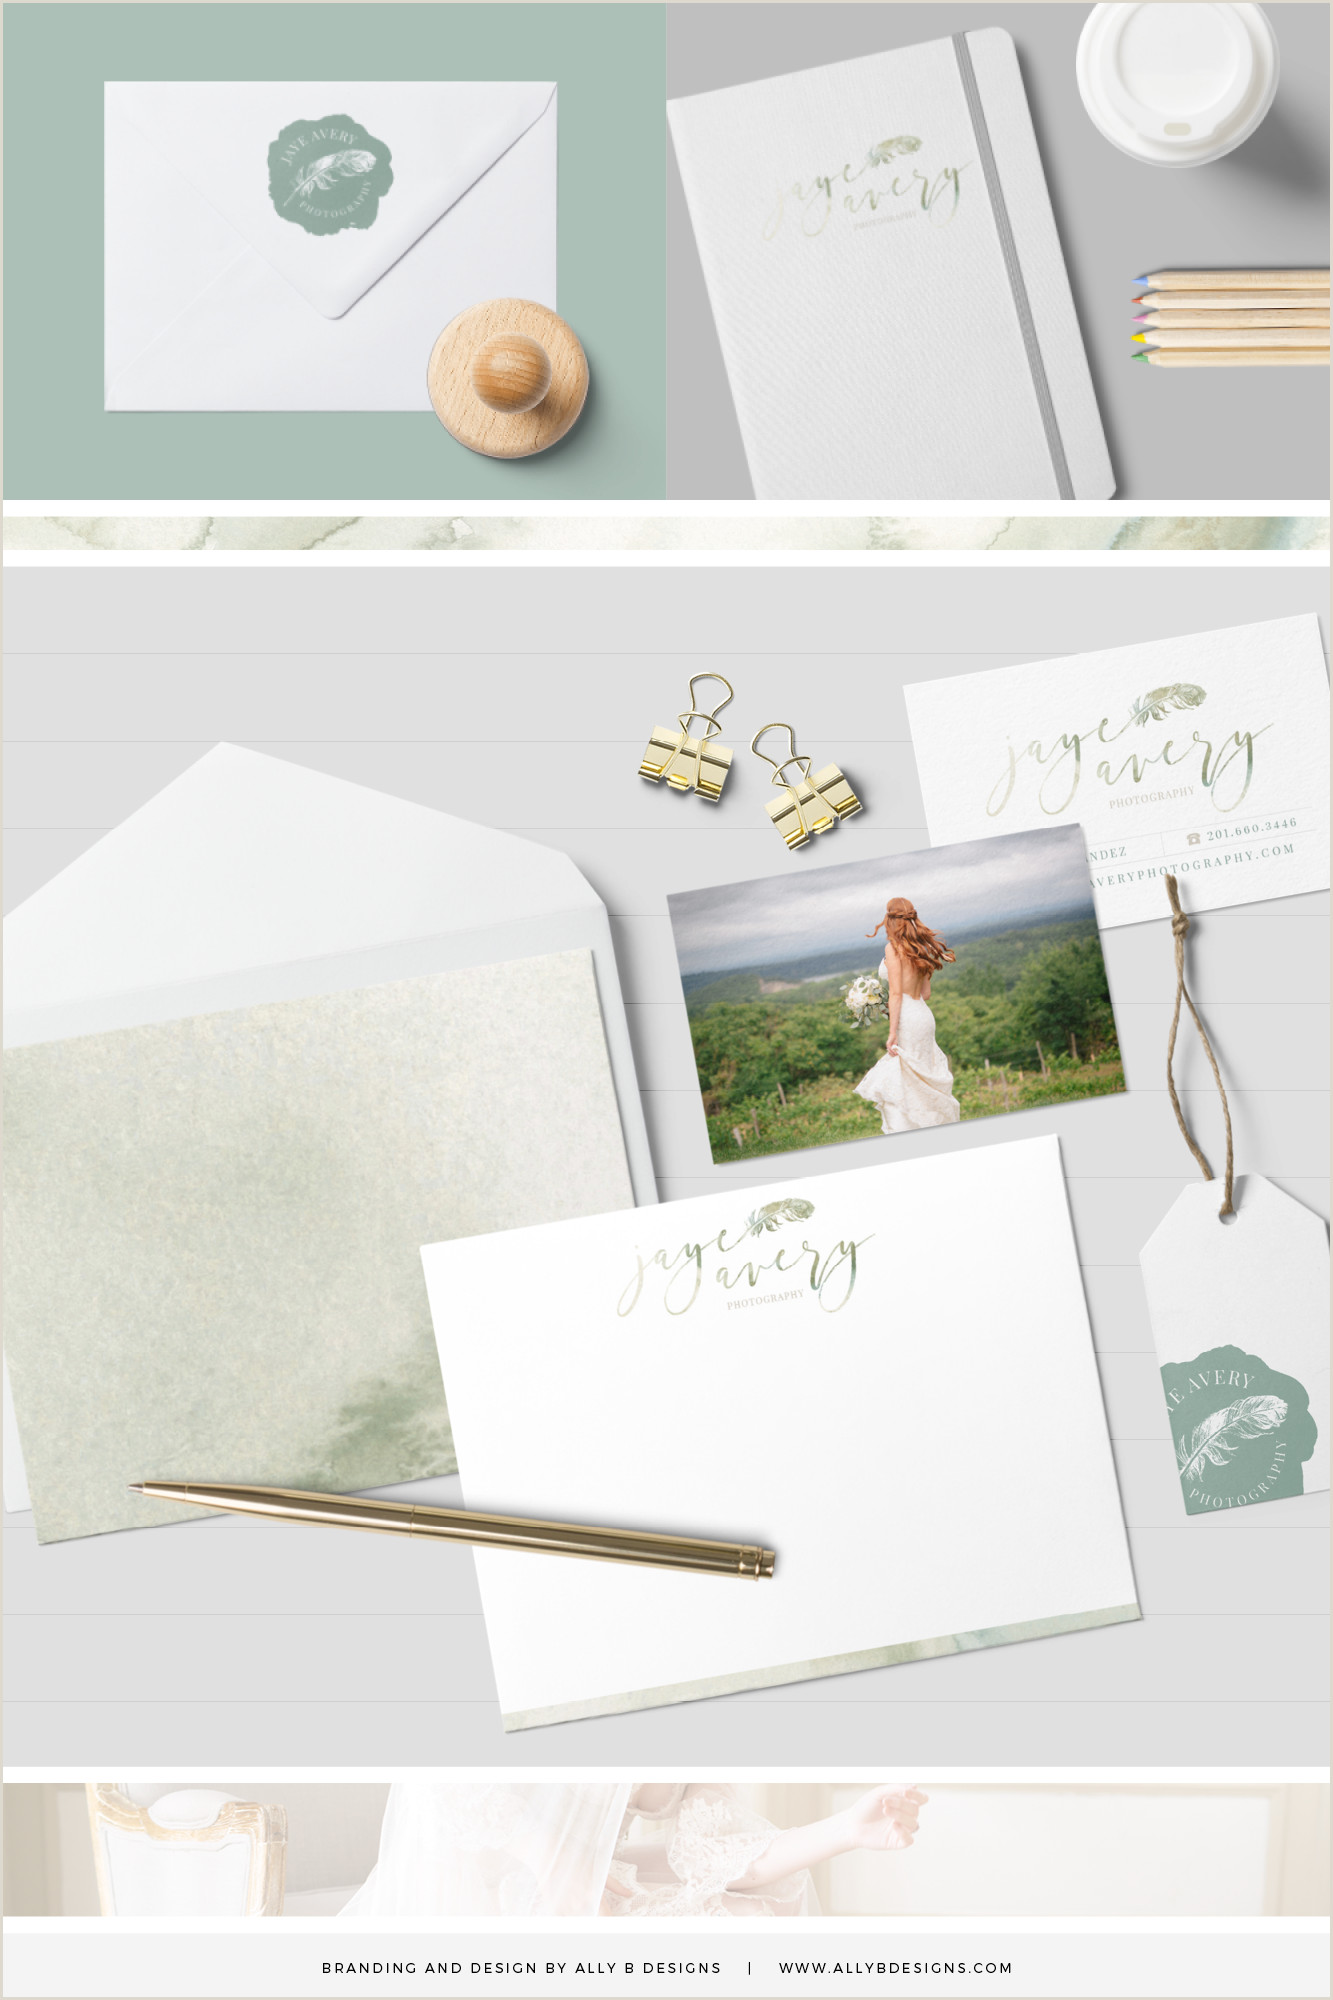 Photographer Business Cards Examples Custom Brand Design By Ally B Designs